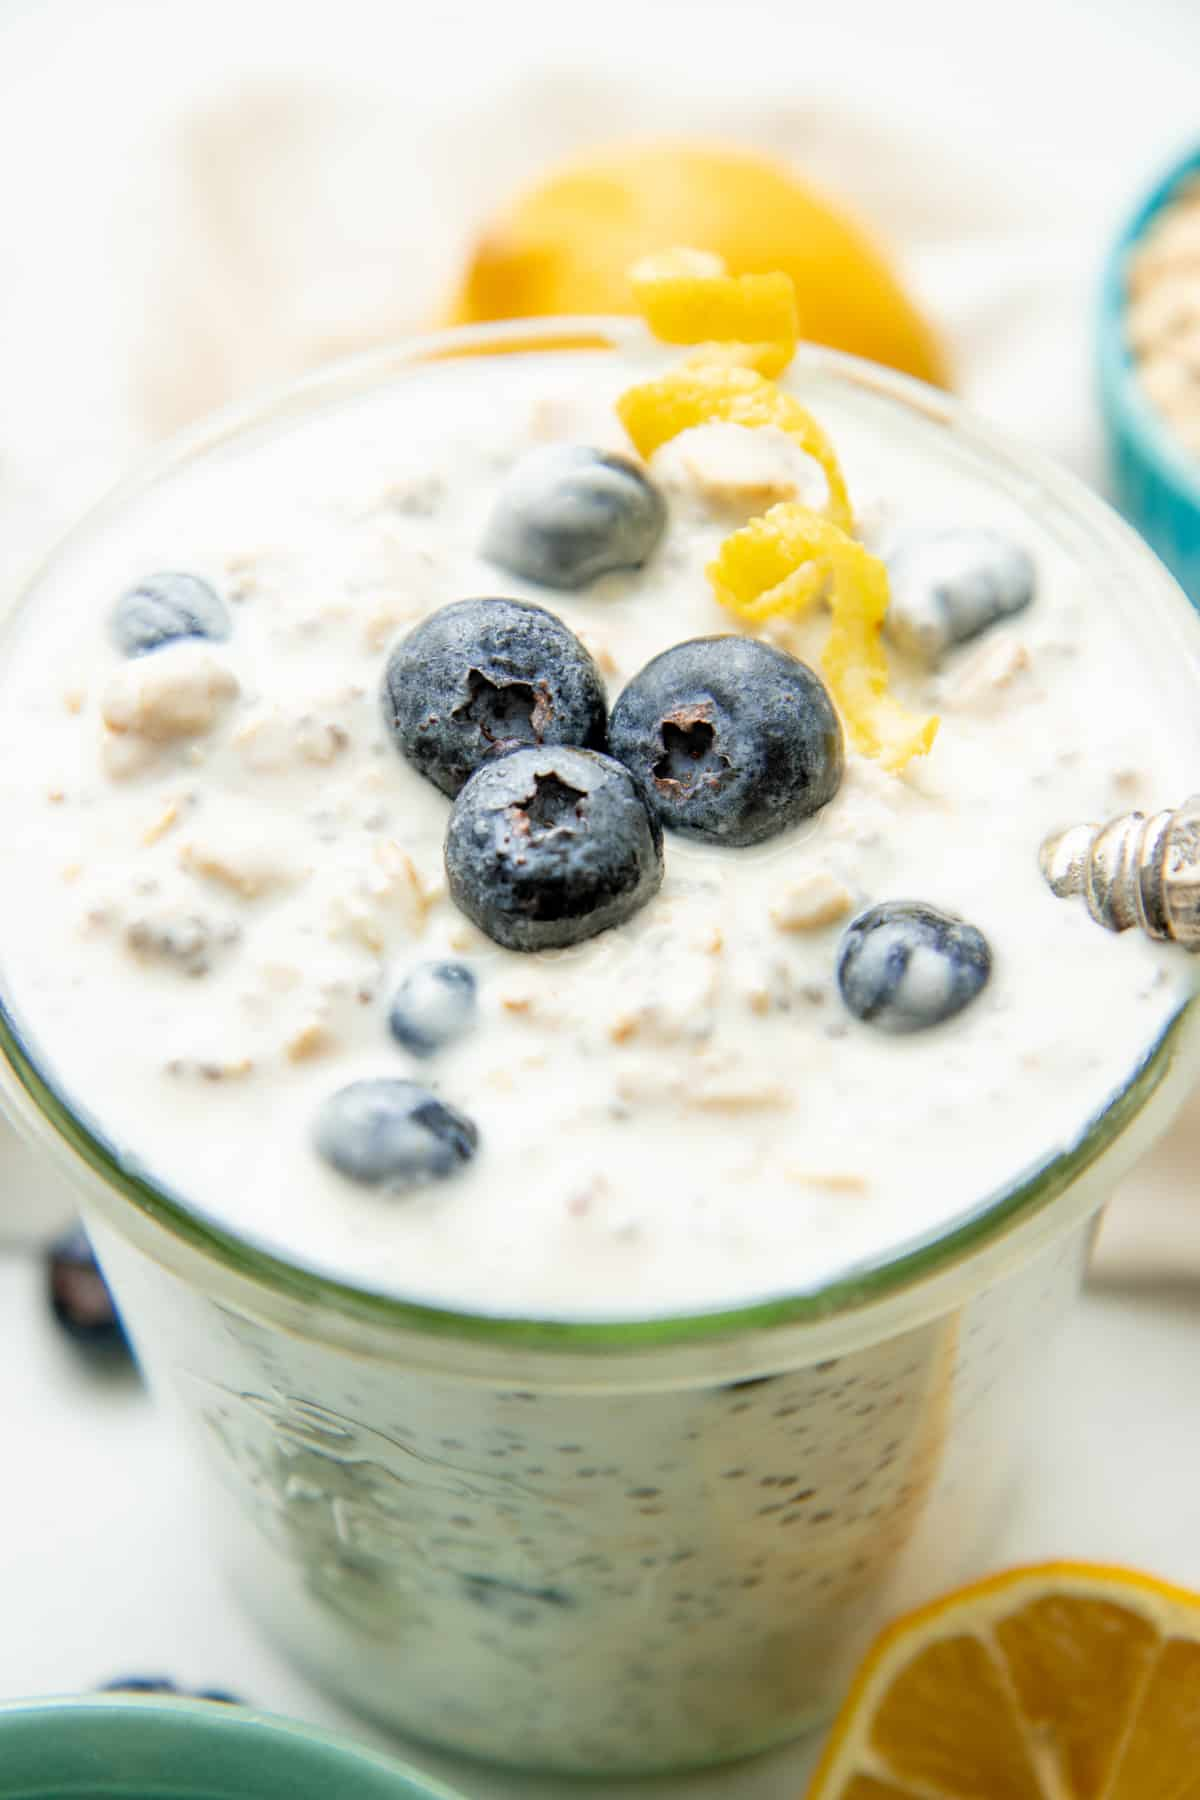 Overnight oats are topped with blueberries and a twist of lemon.